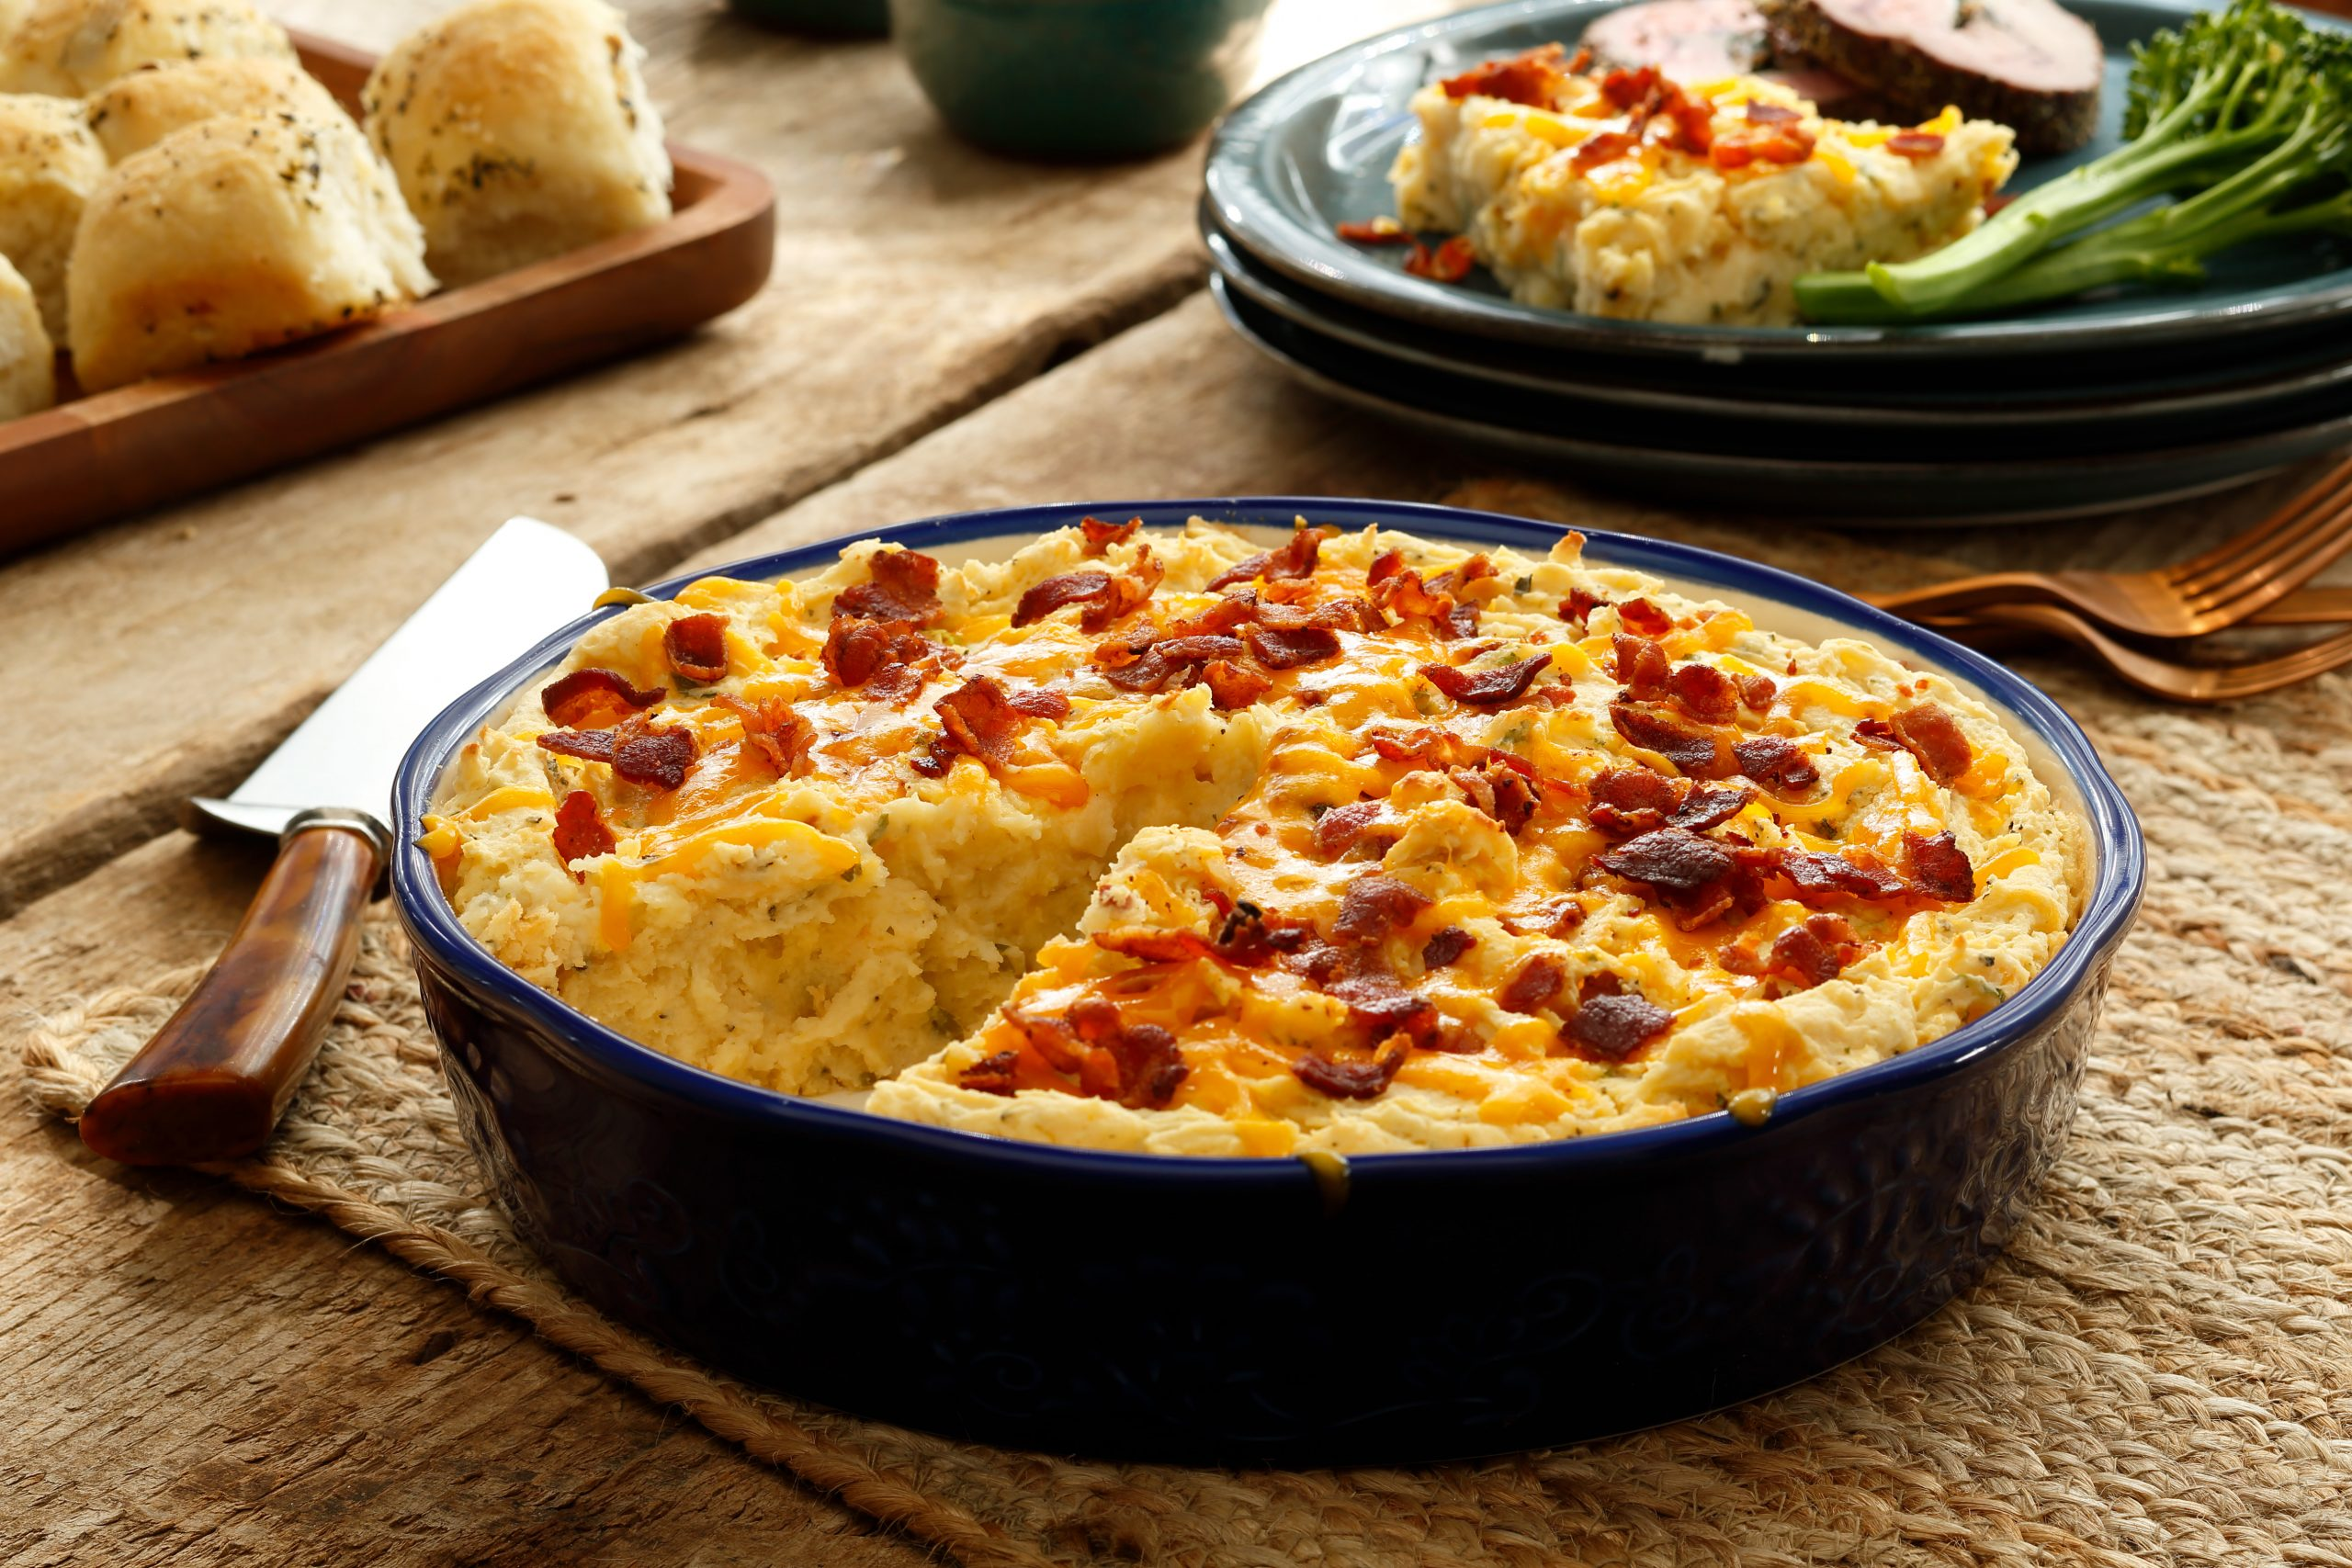 Idahoan Fall Potato Casserole